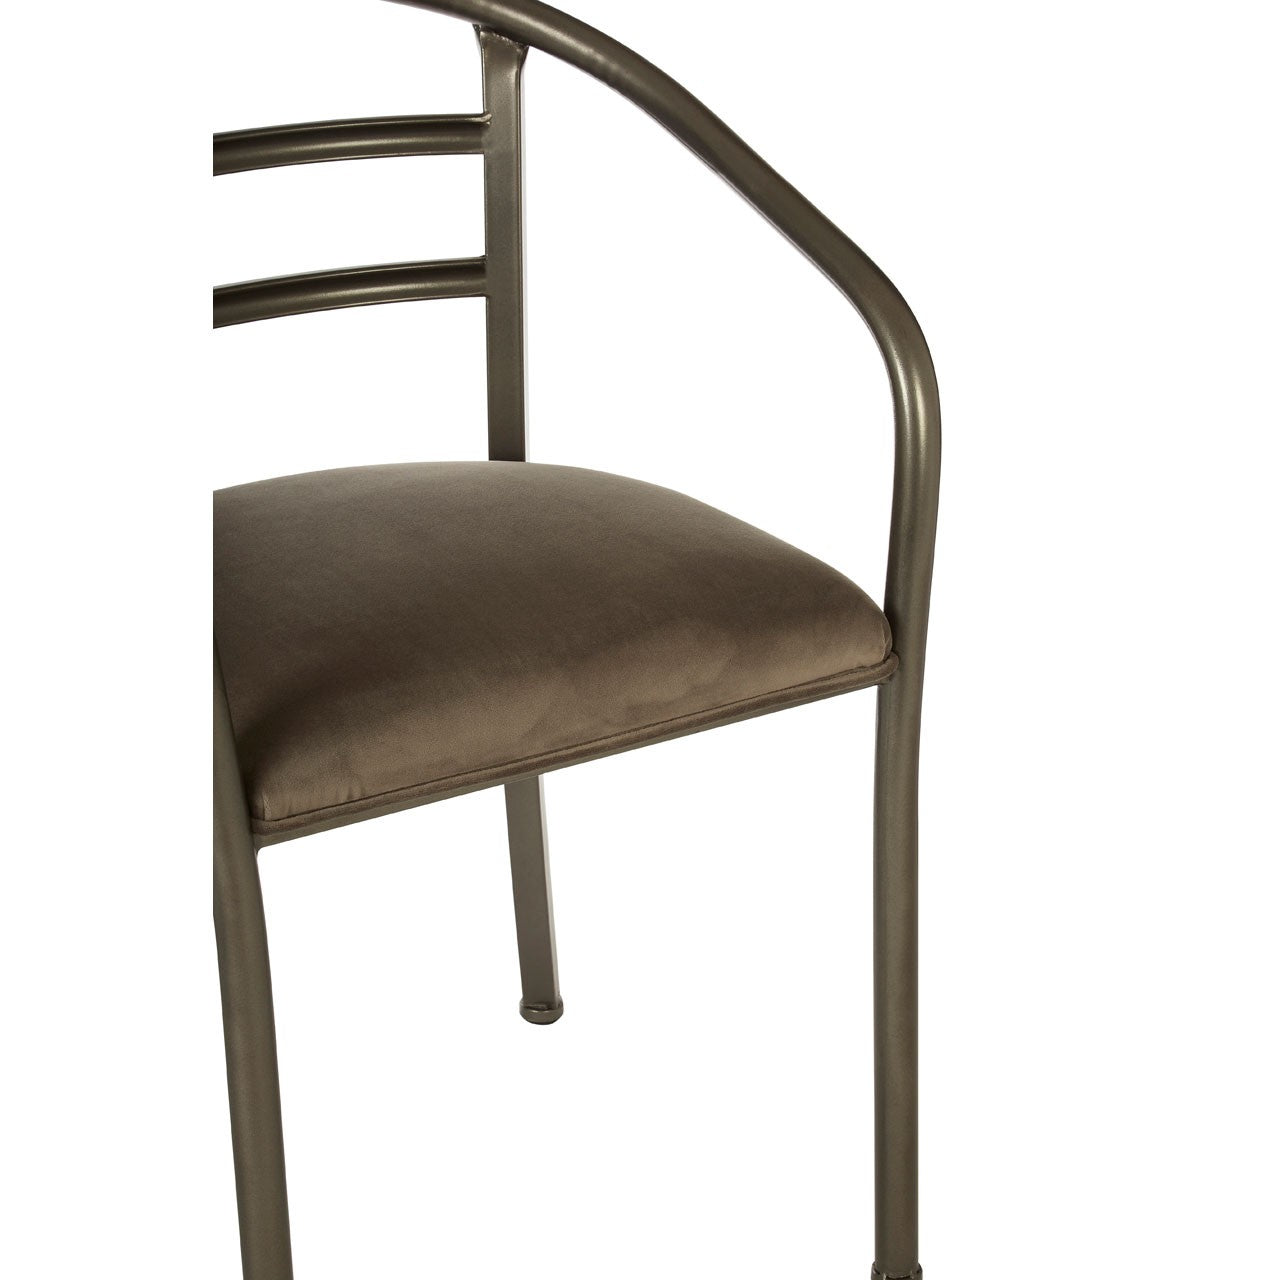 New Foundry Armchair With Curved Backrest